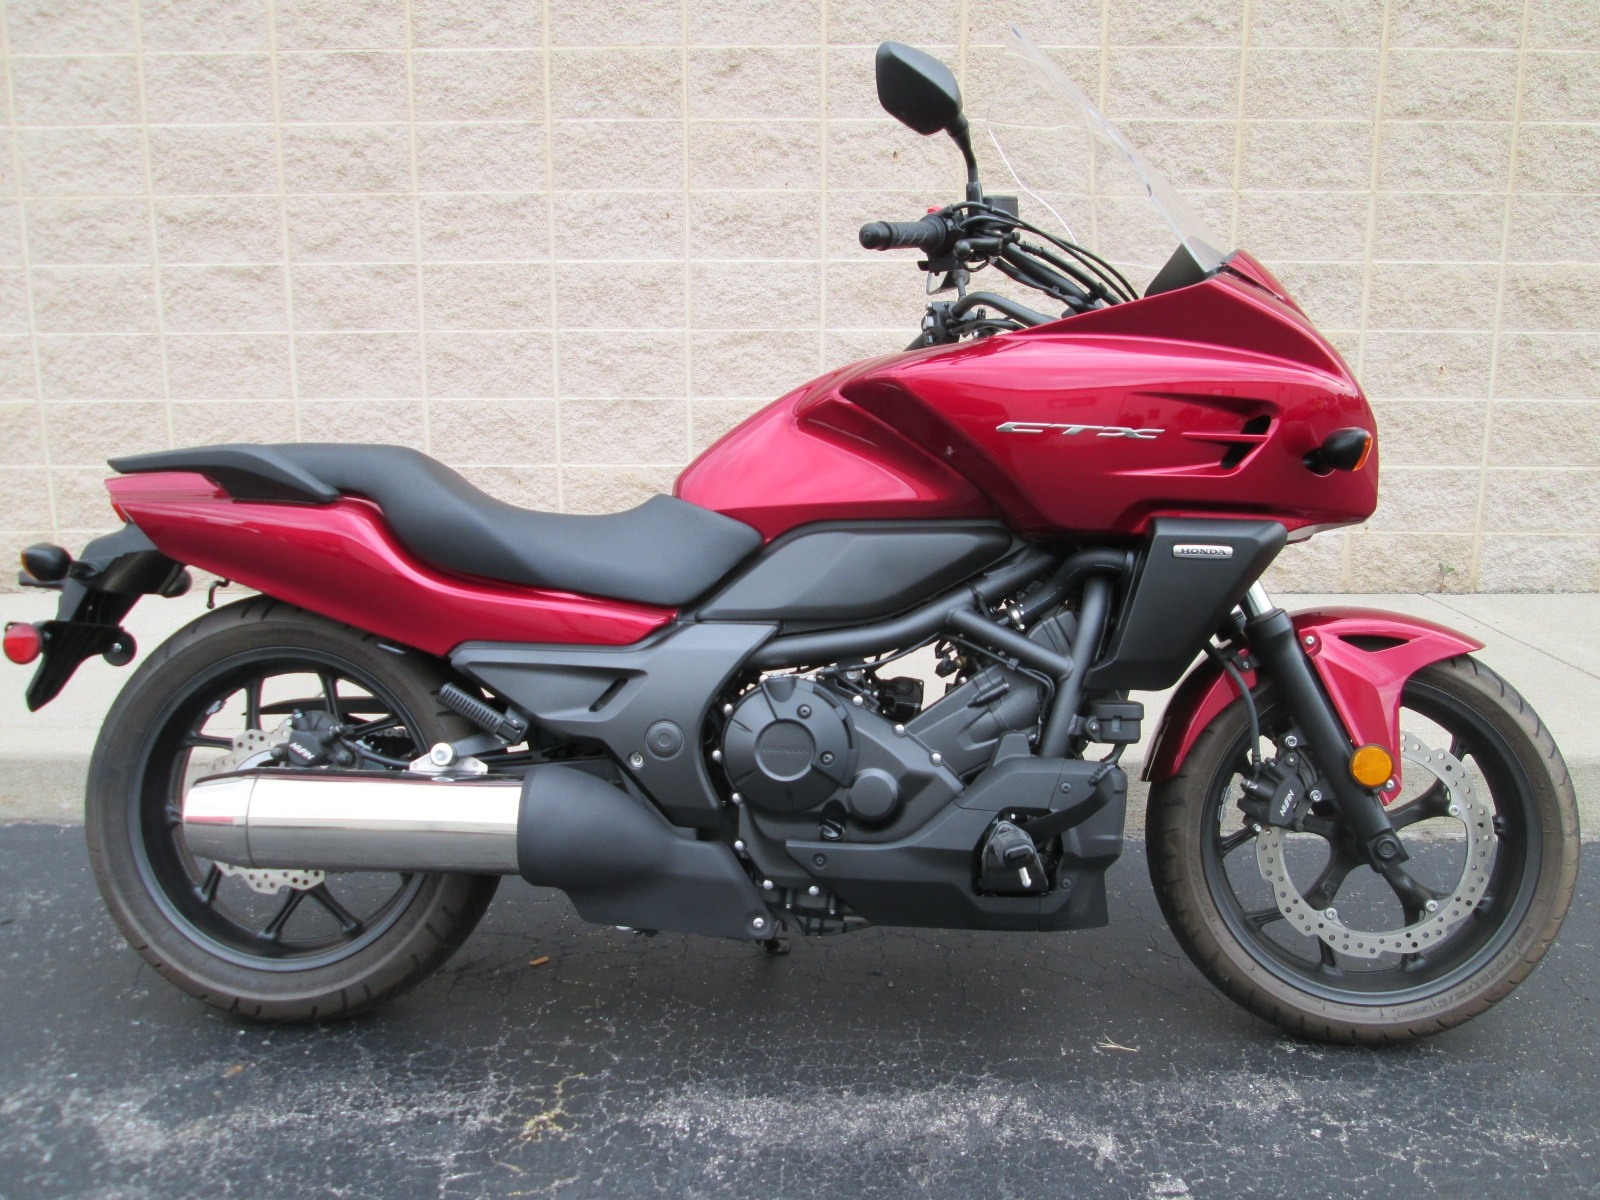 used 2014 honda ctx 700 motorcycles in fort wayne in. Black Bedroom Furniture Sets. Home Design Ideas